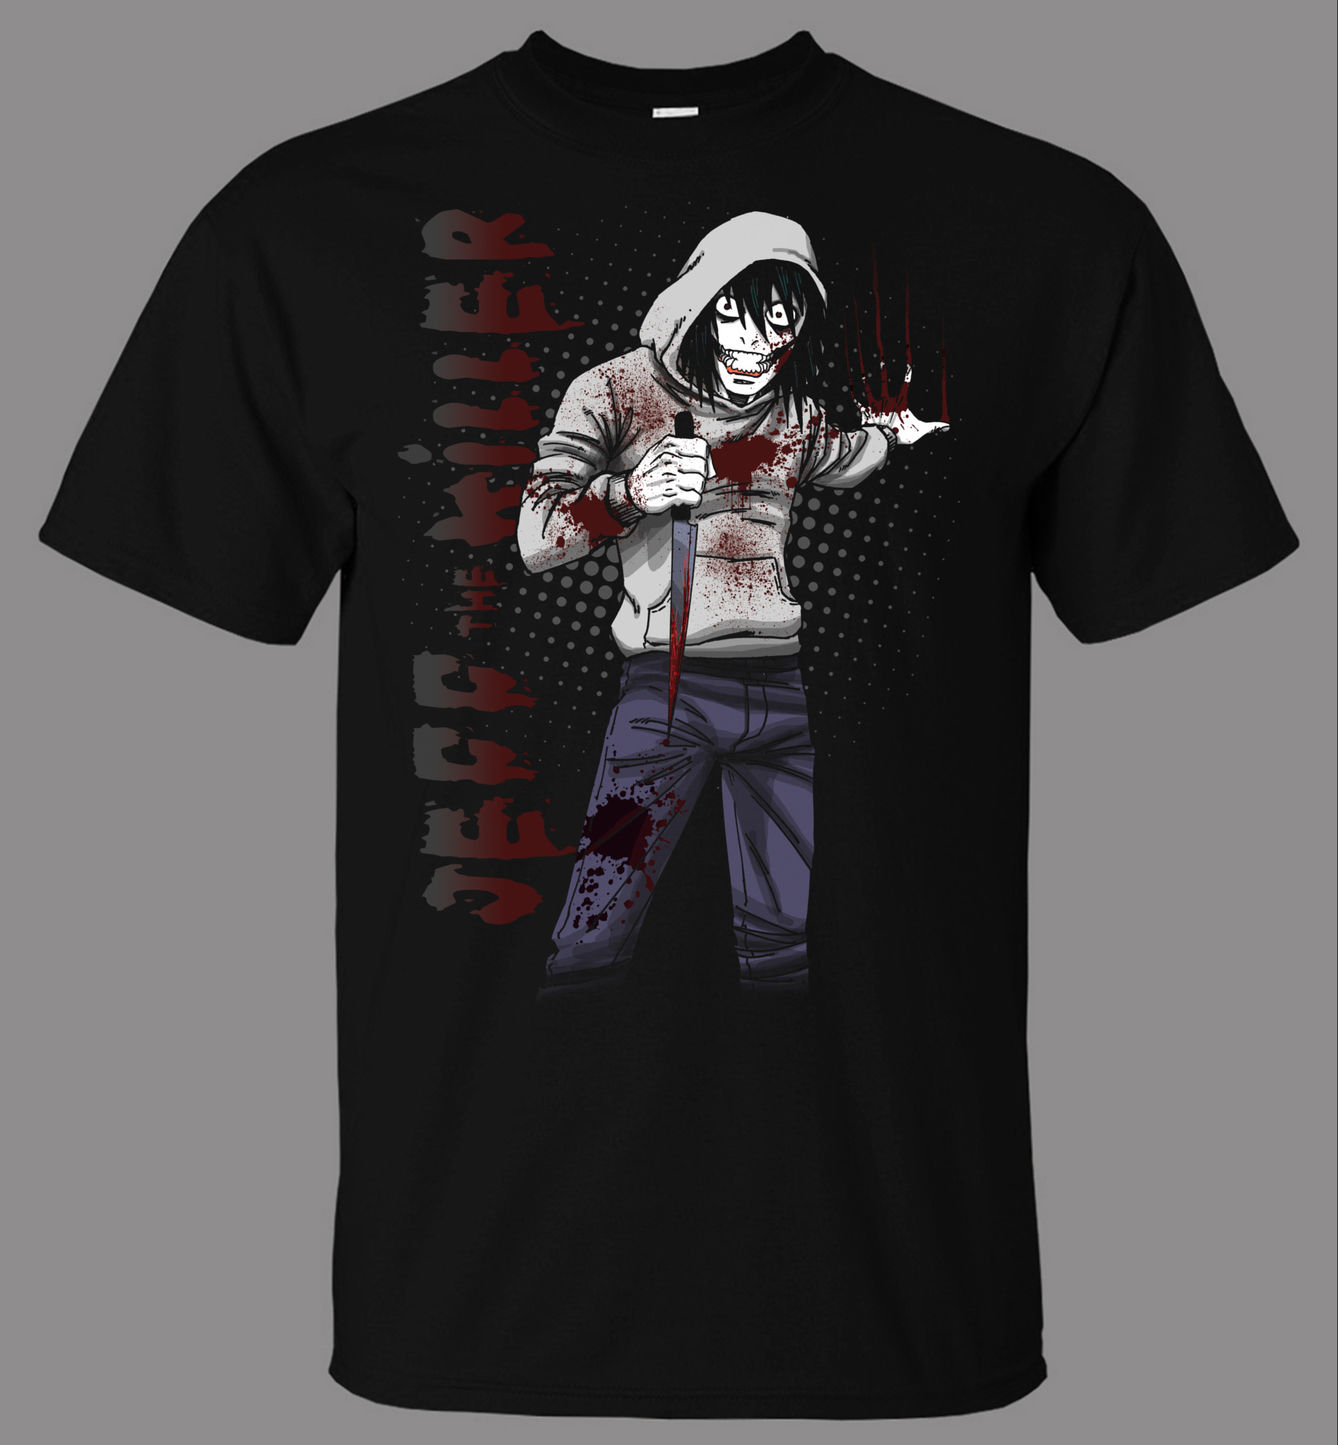 Jeff The Killer V3 T-Shirt - Direct From Stockist 100% Cotton Brand New T-Shirts Top Tee T Shirt Men High Quality Tees